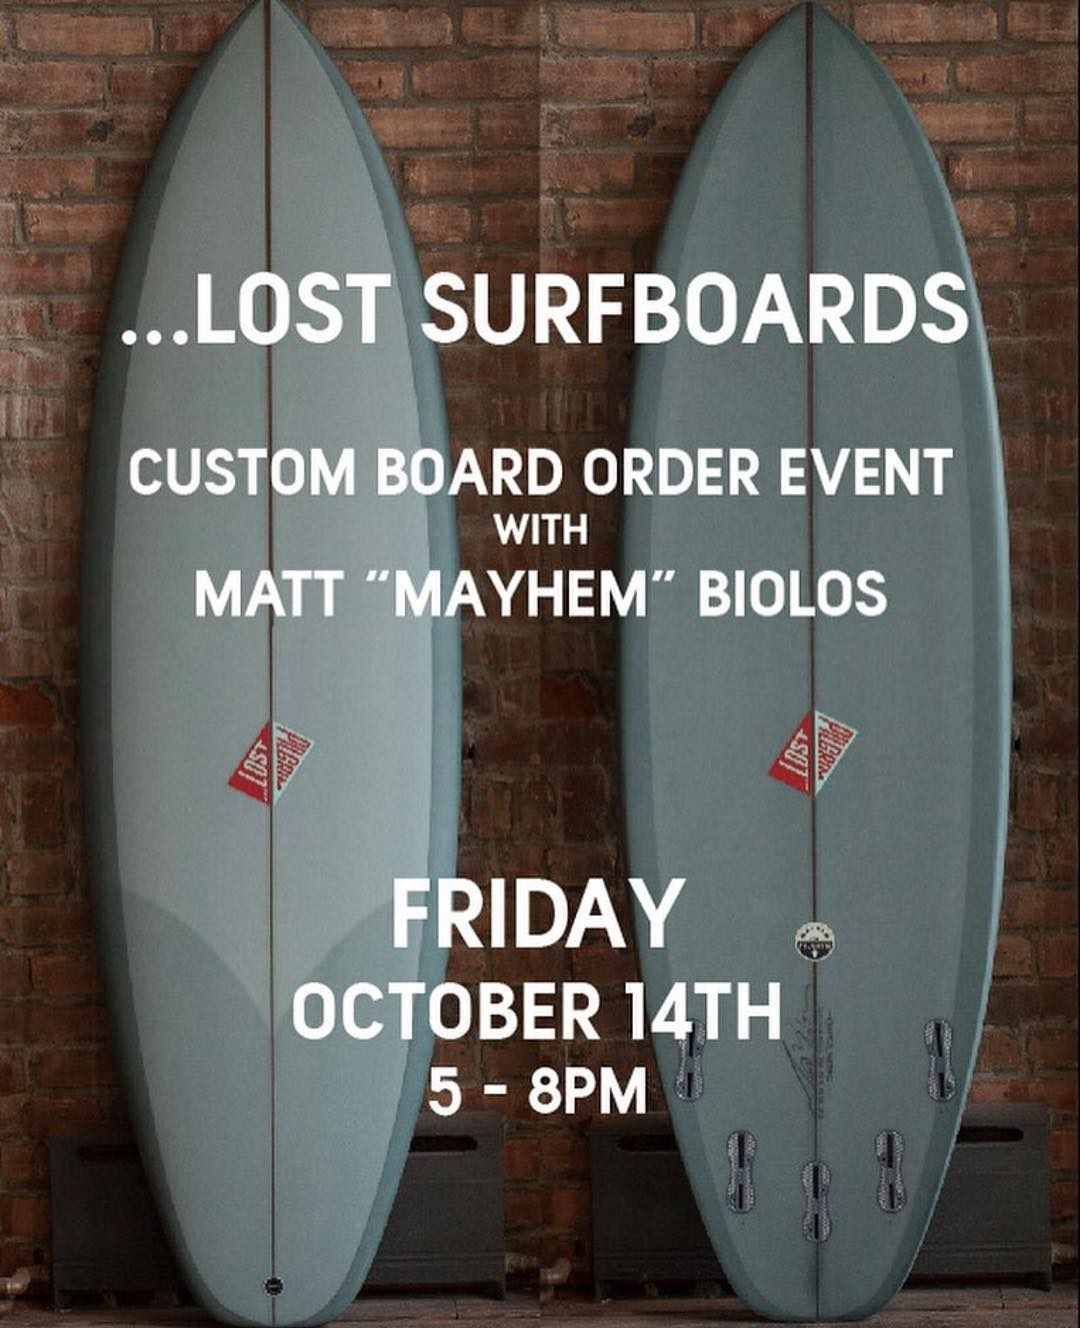 Custom board order event with @mayhemb3_mattbiolos next Friday, October 14th at at @pilgrimsurfsupply. Have a drink and place your custom @lostsurfboards order directly with Matt Biolos